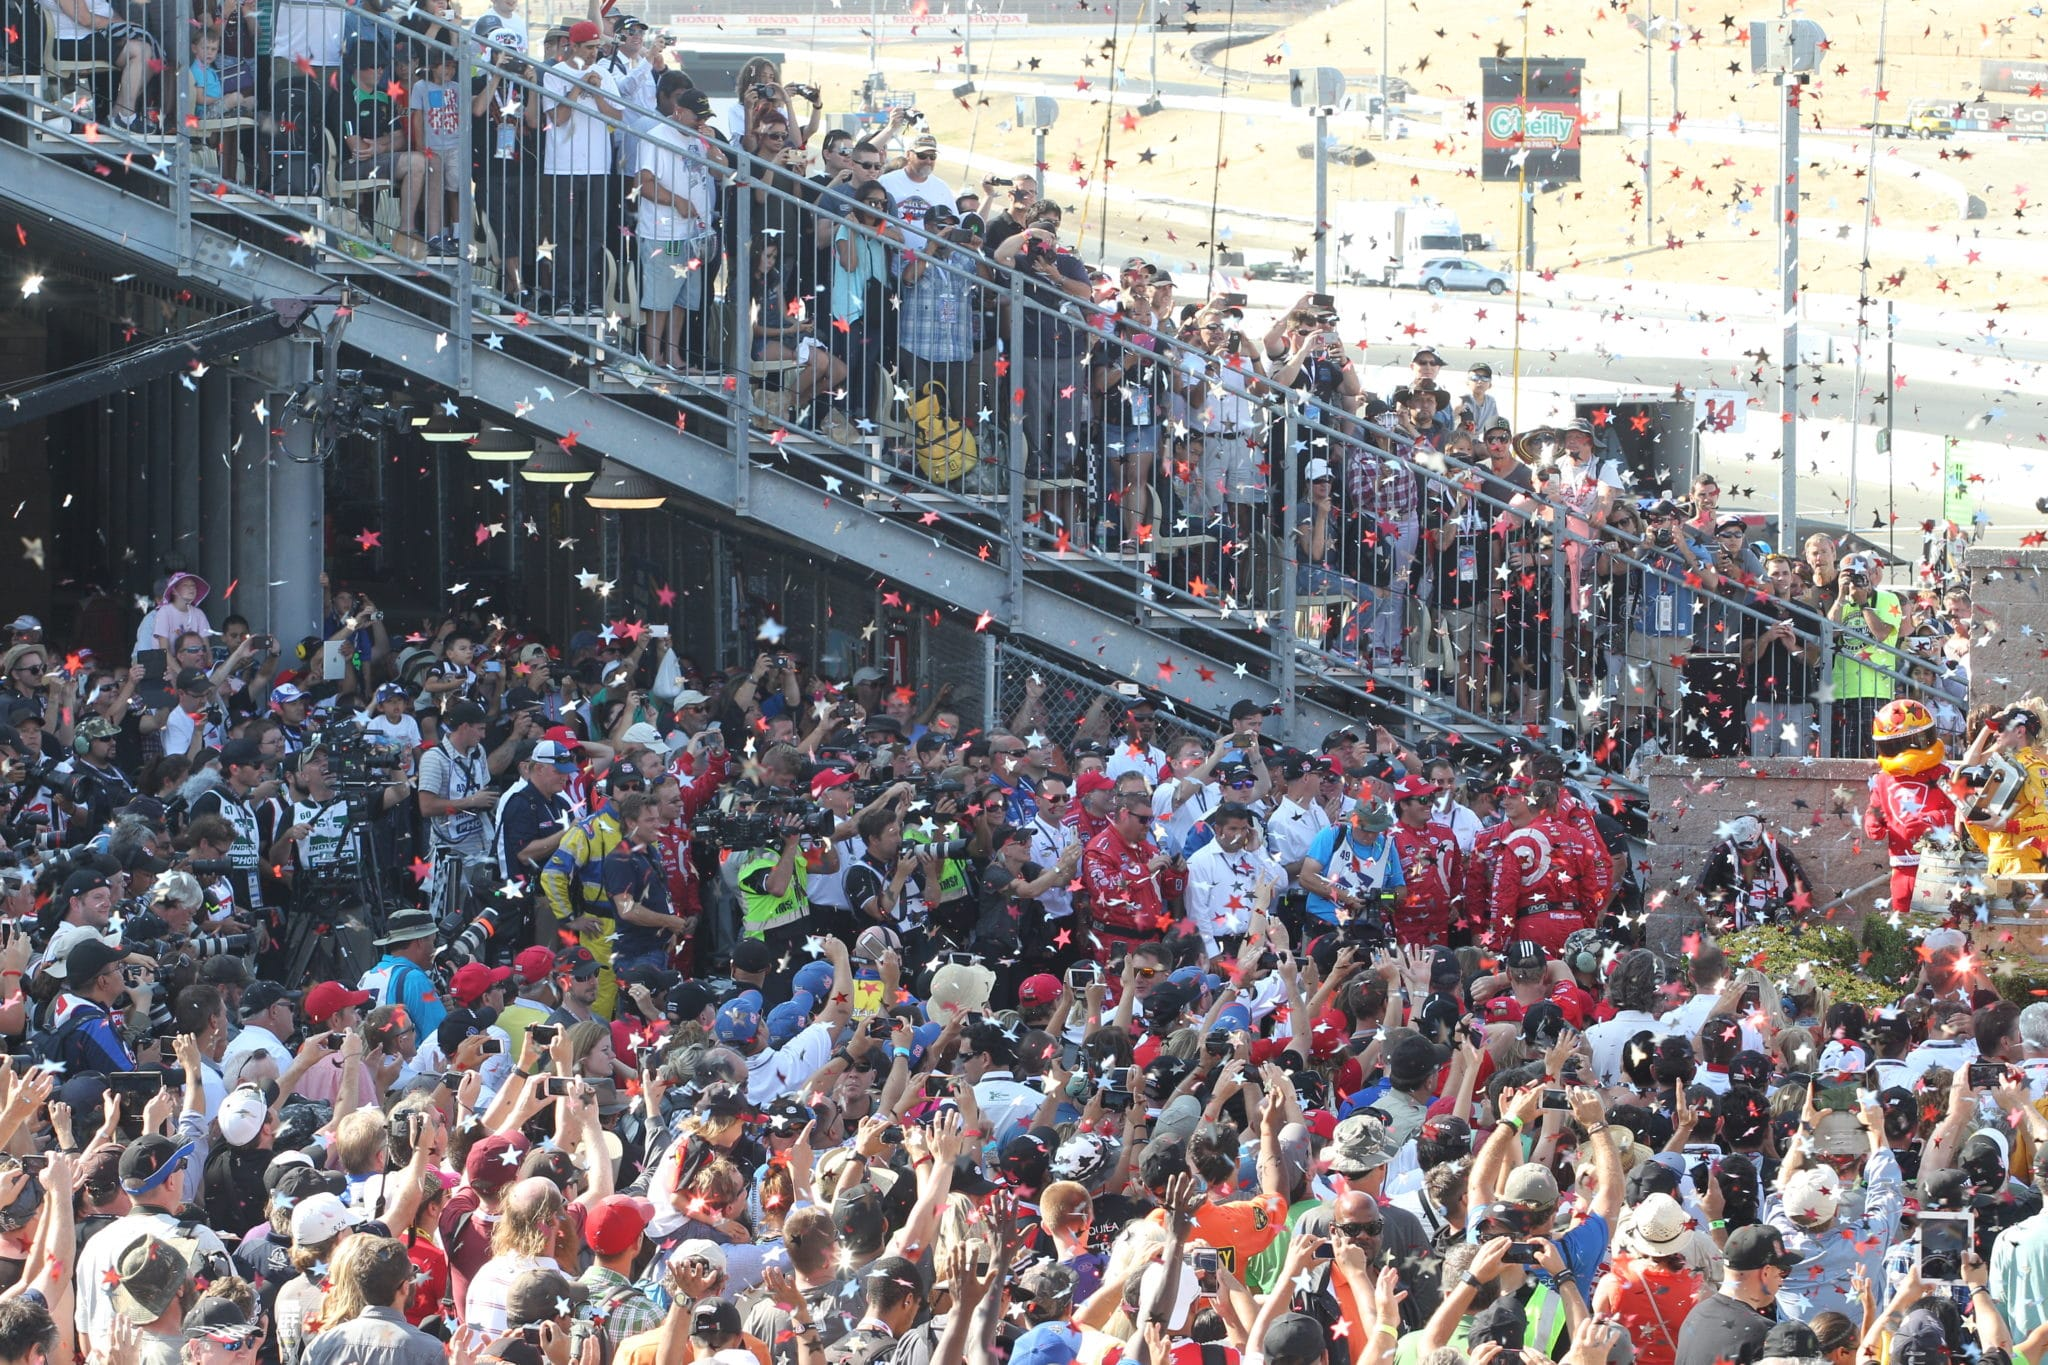 Crowd shot at Sonoma Raceway for the IndyCar finale in 2015 (credit: IndyCar)